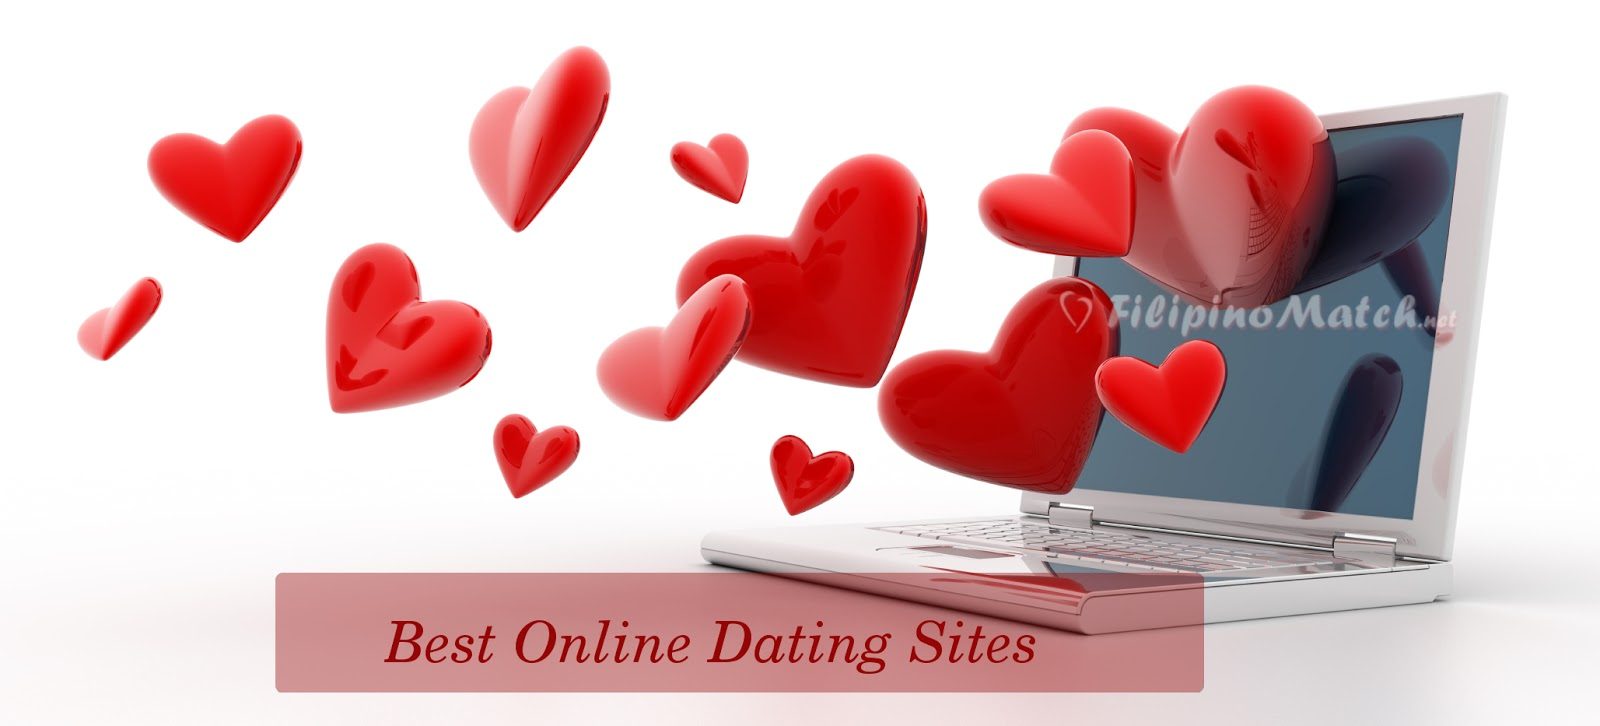 What are some free dating sites